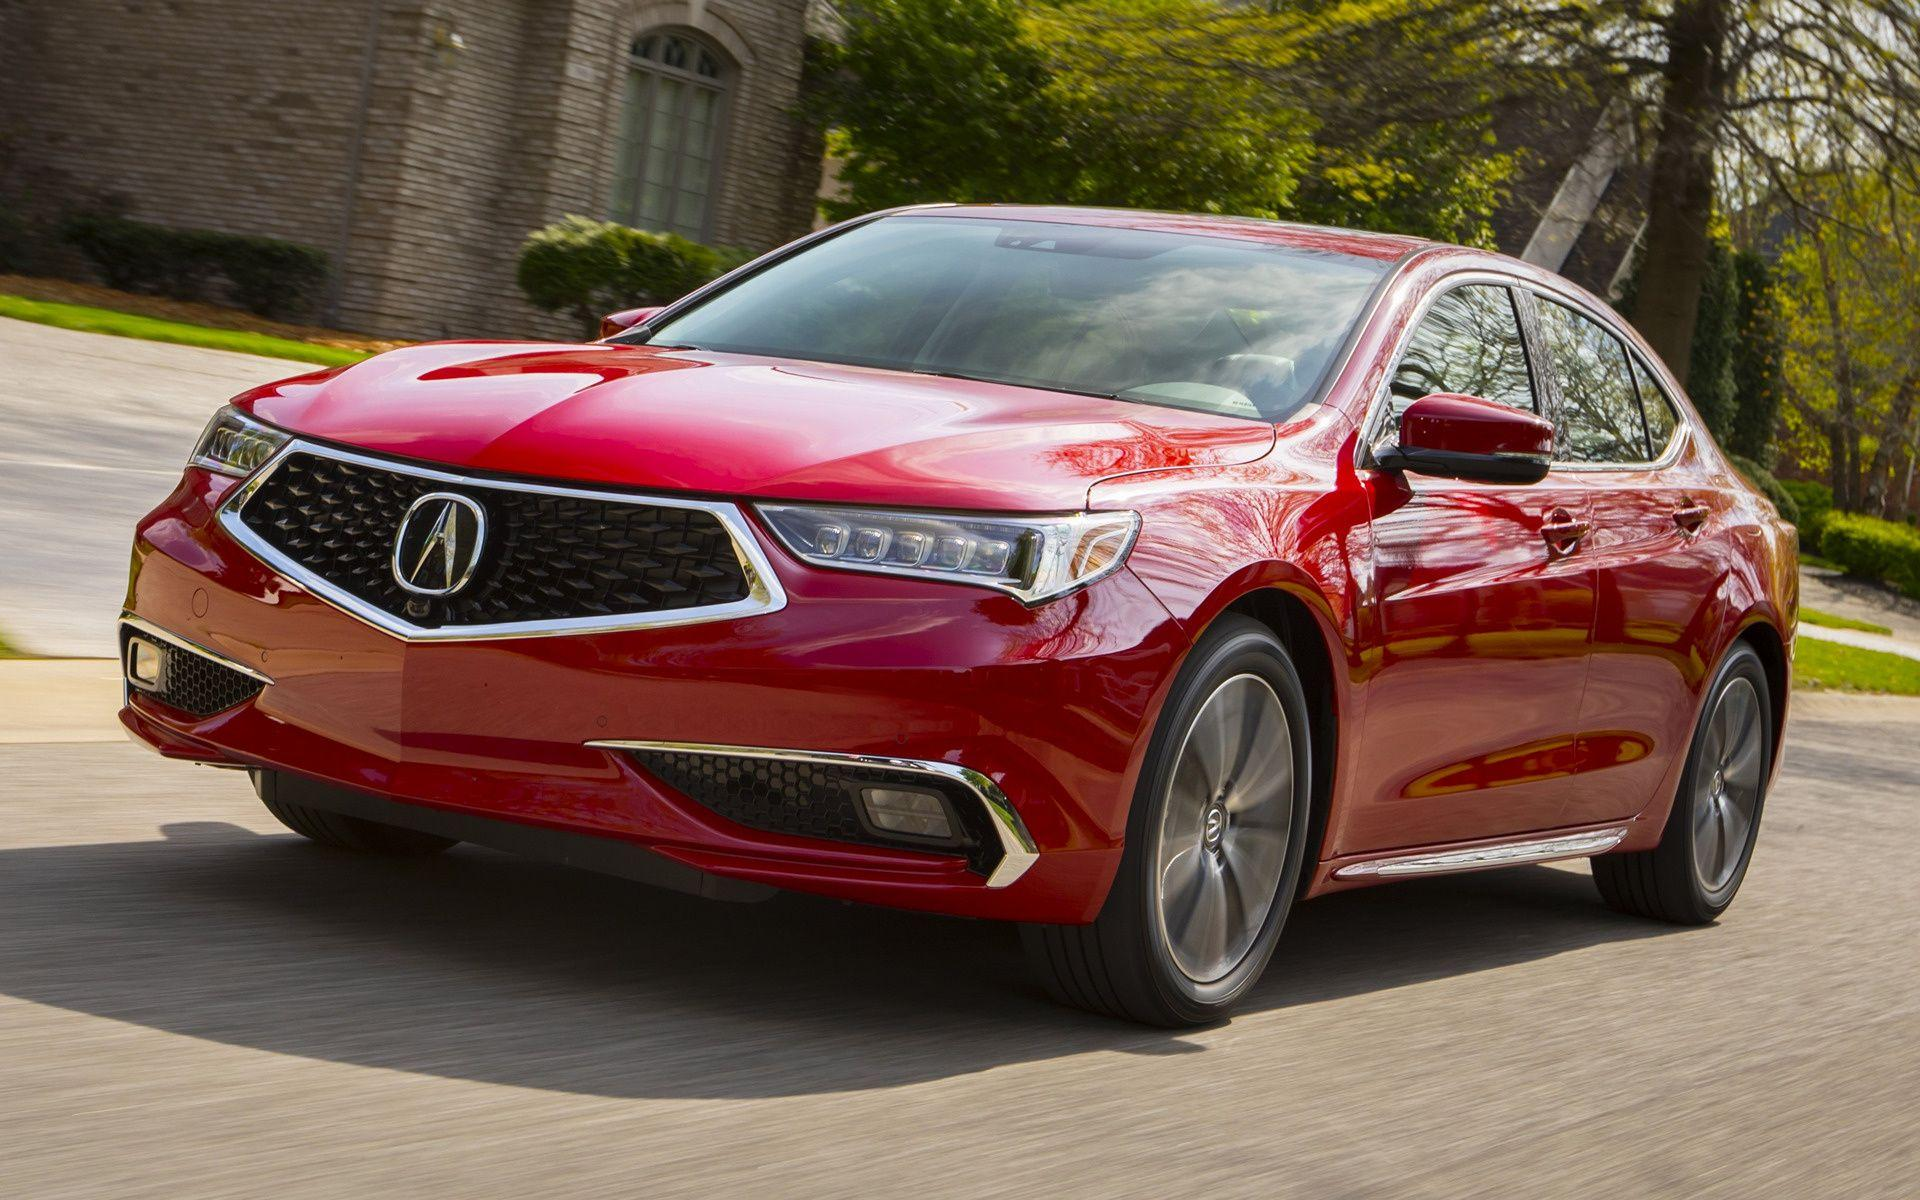 Acura TLX (2018) Wallpapers and HD Images - Car Pixel